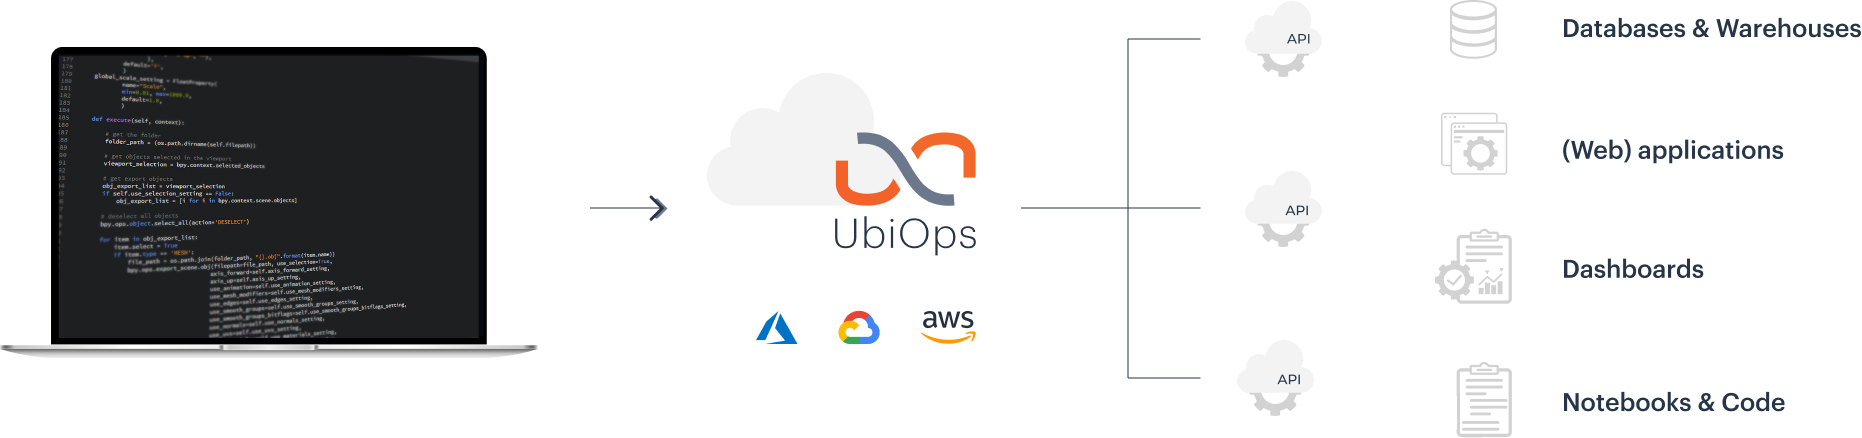 UbiOps enables you to go quickly and easy from code to live application.